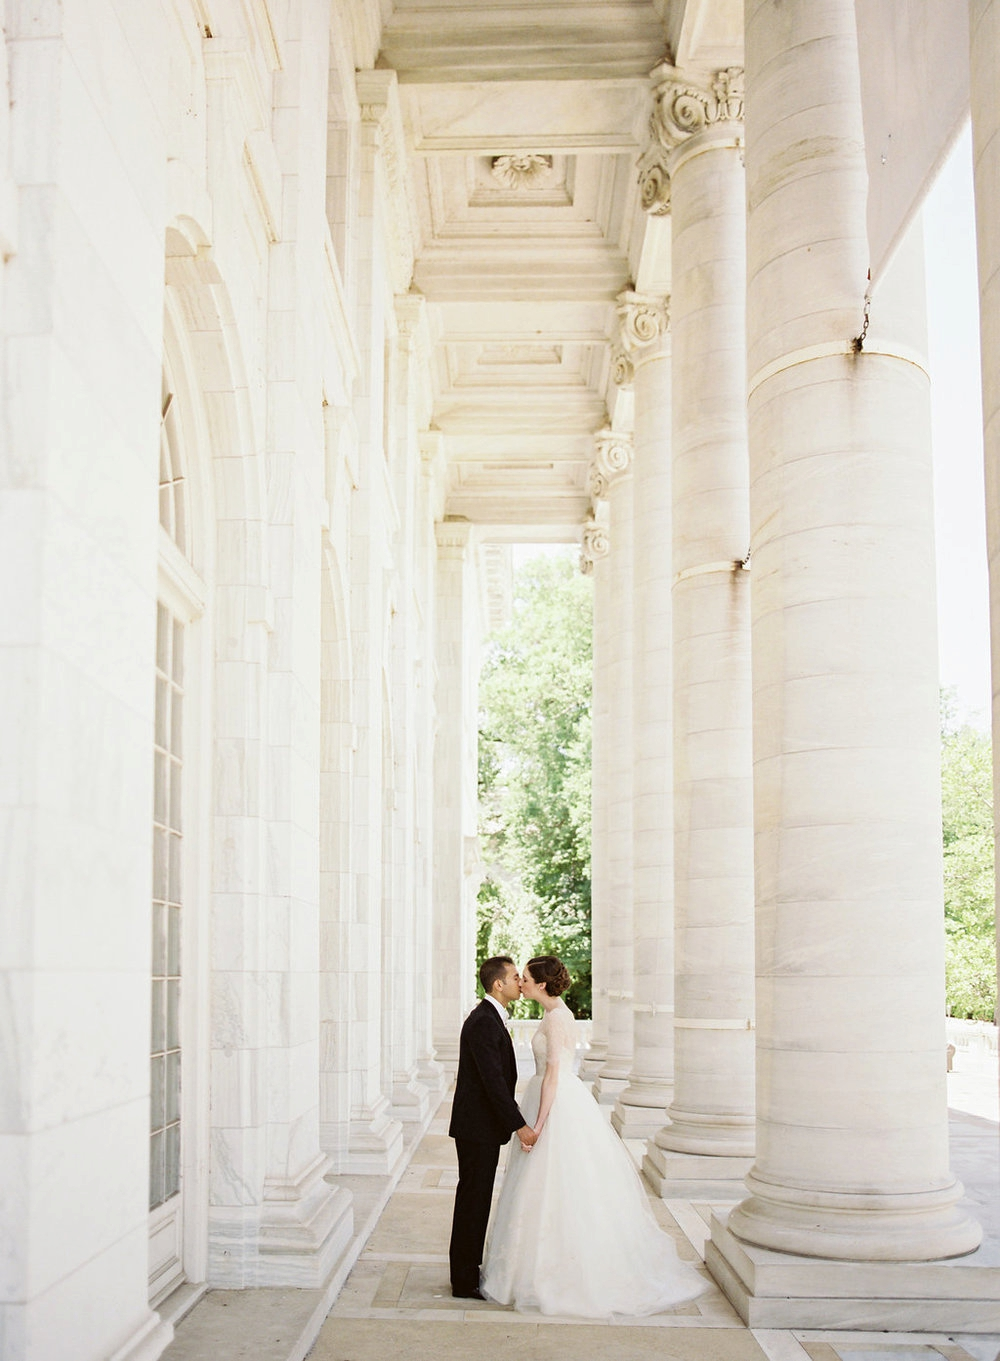 Vicki Grafton Photography - Fine Art DC Virginia Charlottesville Film Wedding Photographer_0025.jpg